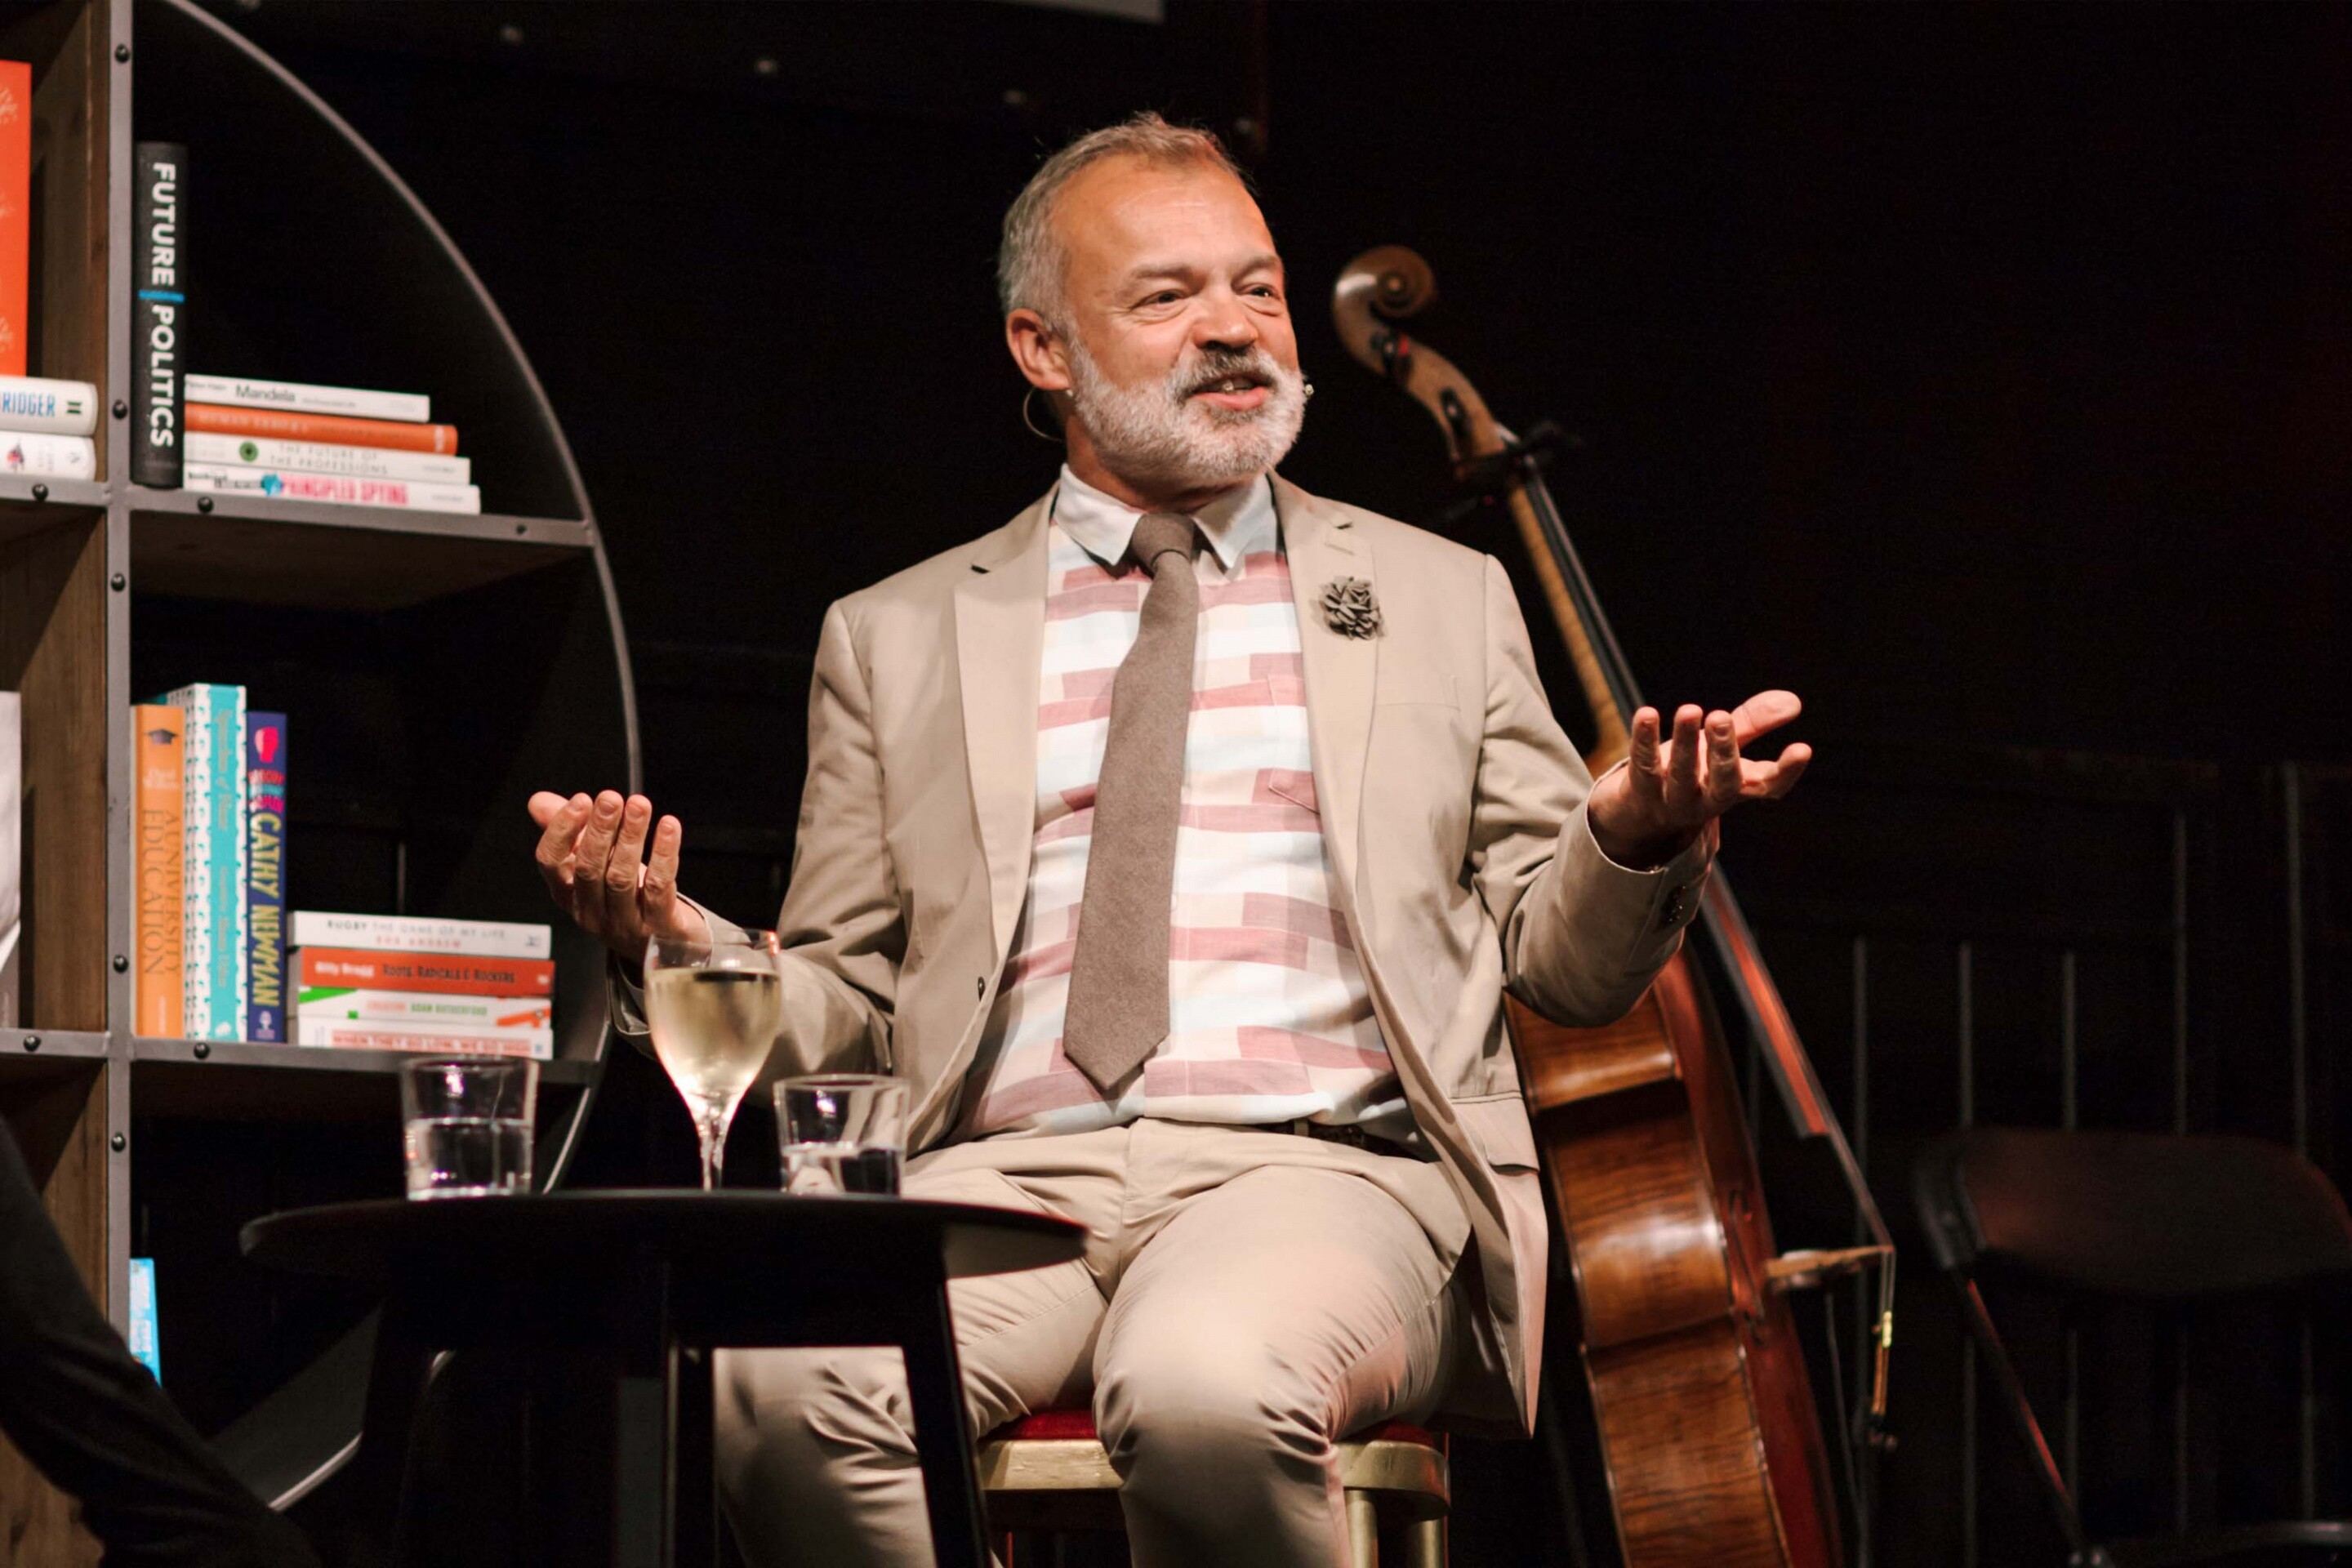 Wimbledon Bookfest Graham Norton